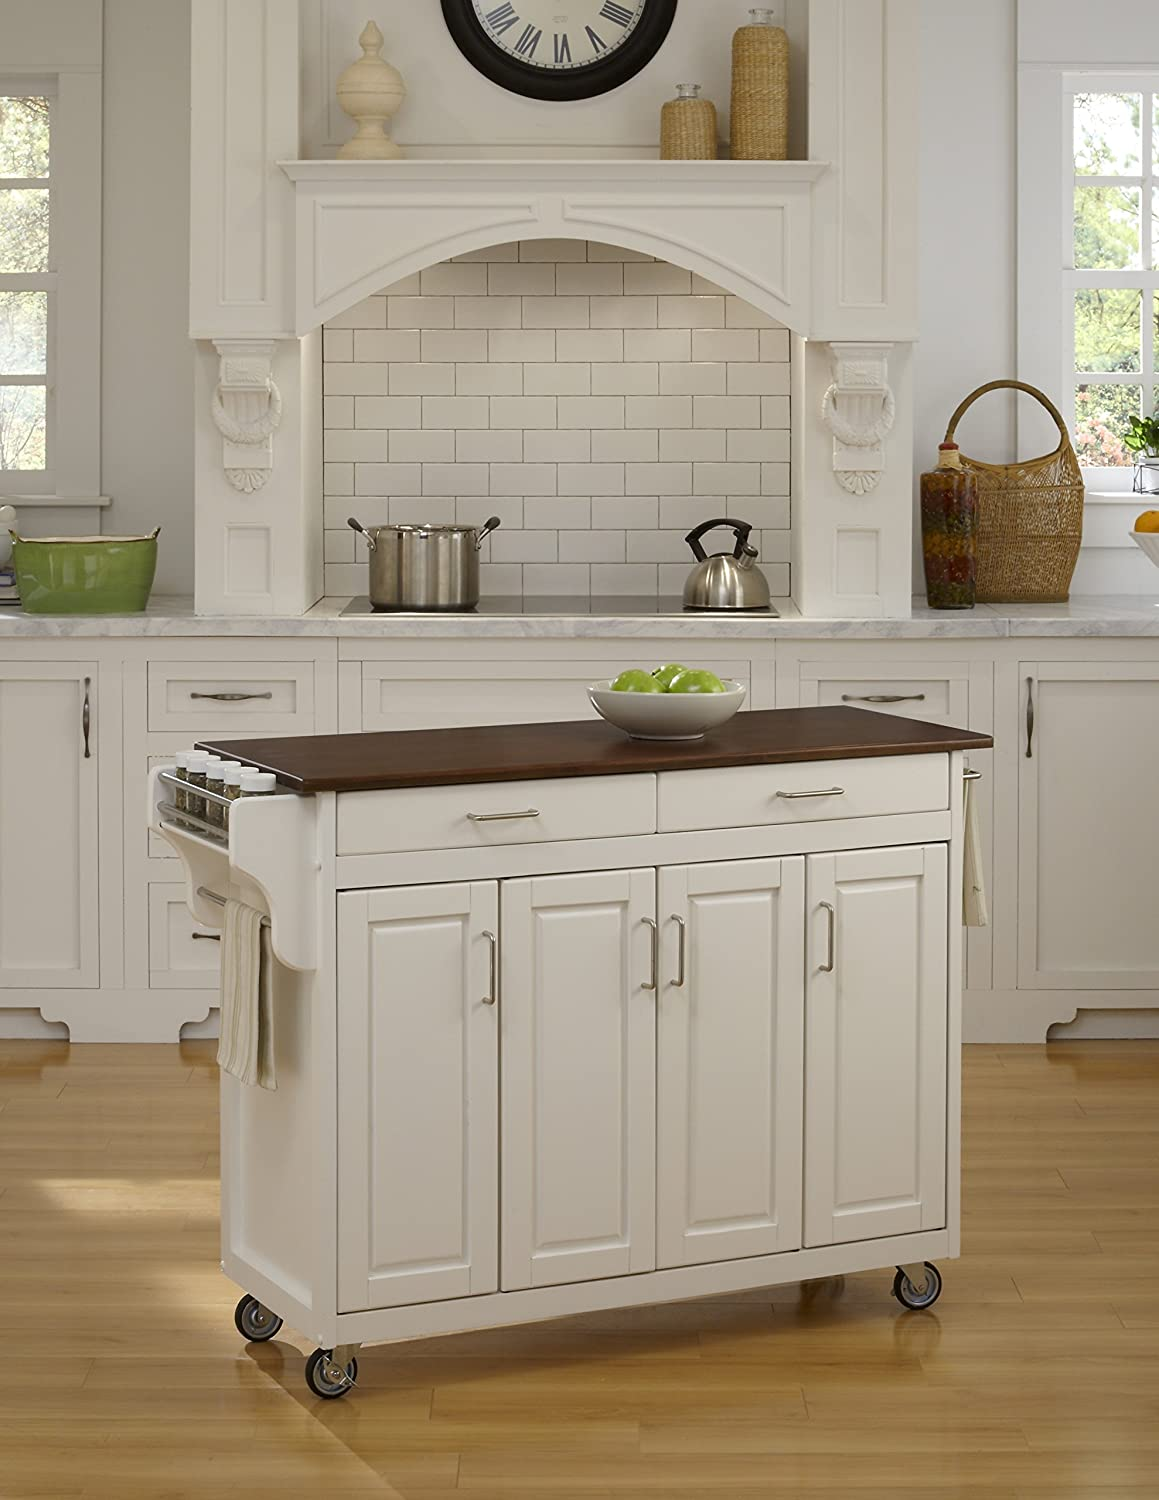 Create-a-Cart White 4 Door Cabinet Kitchen Cart with Cherry Top by Home Styles